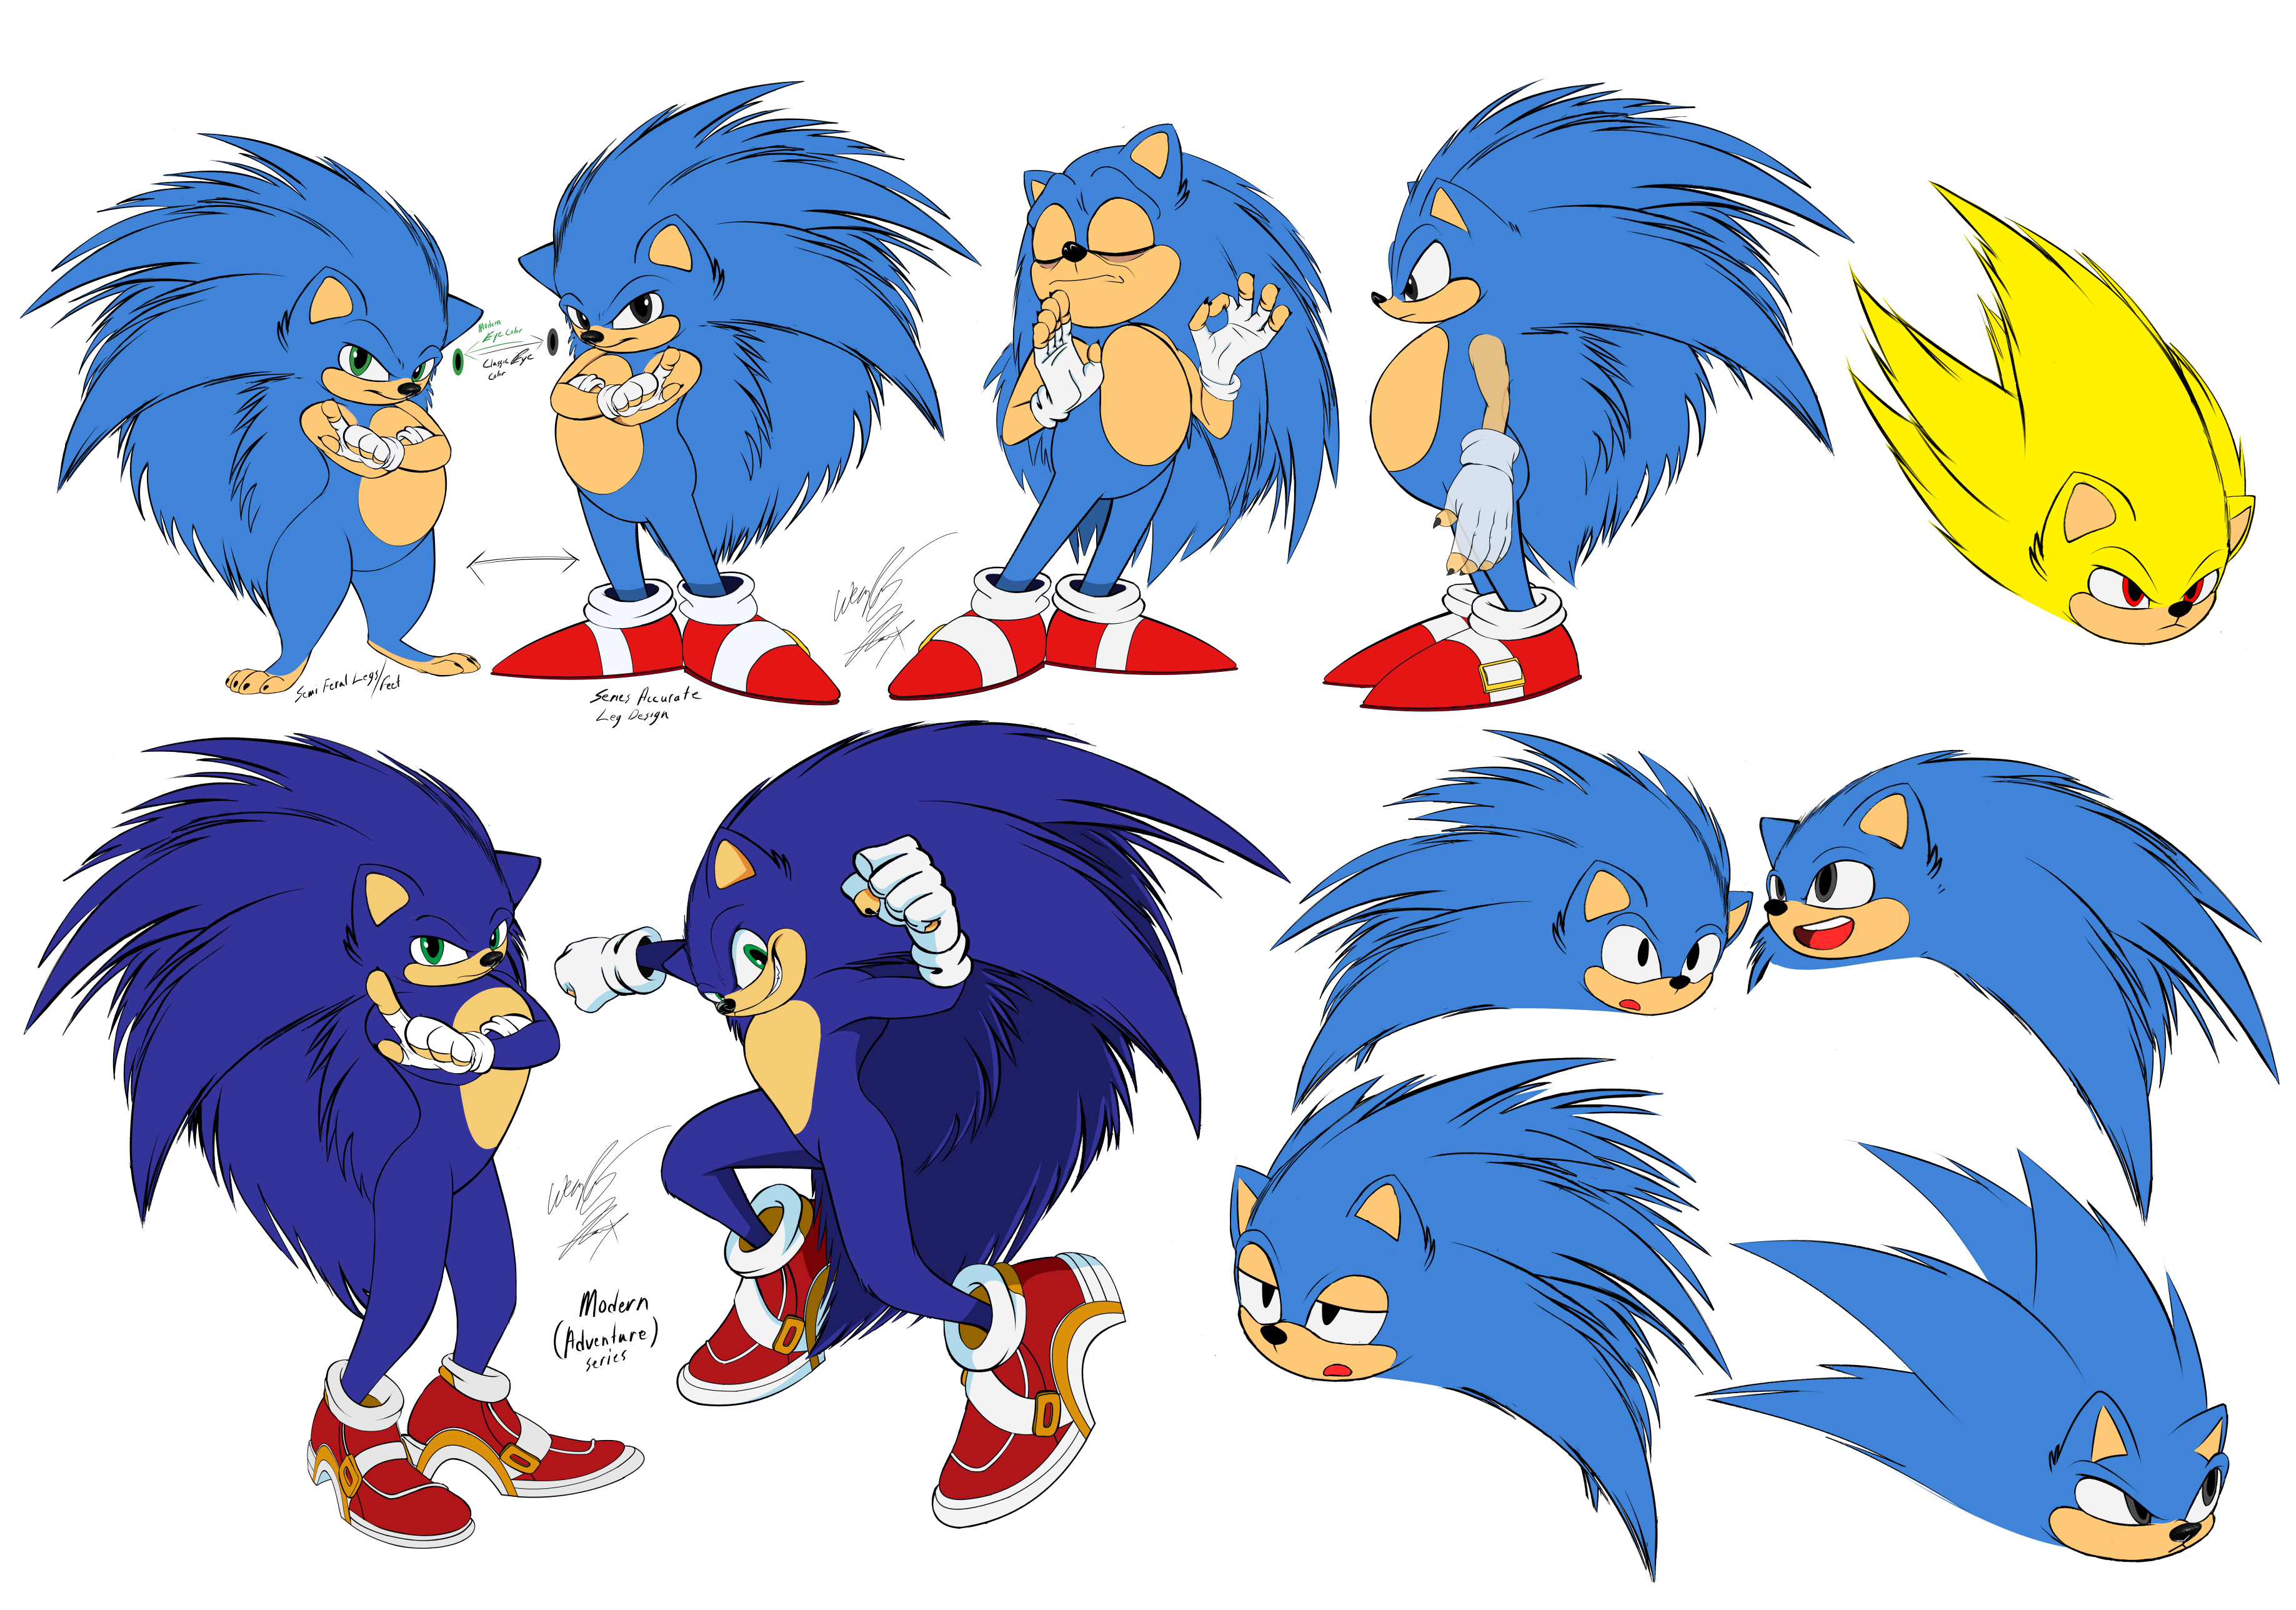 Sonic The Hedgehog Illustration Sheet Revised By Gunzcon On Deviantart